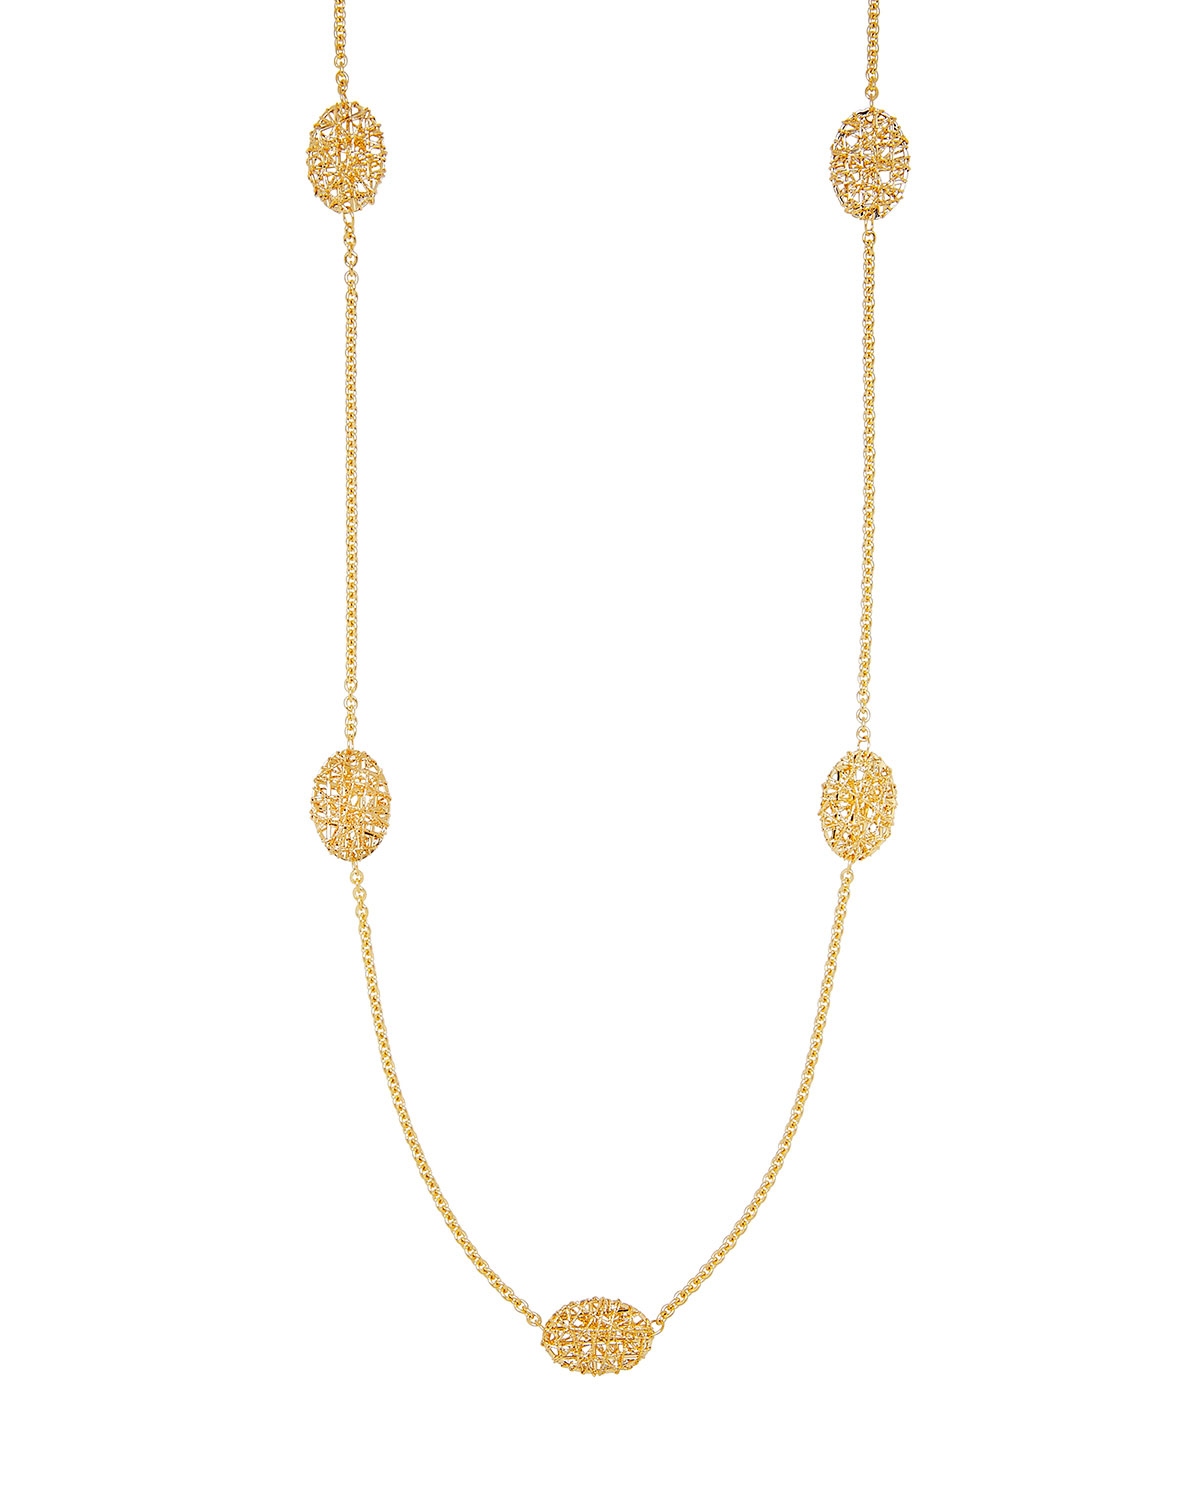 Piazza Duomo 18K Gold Oval Mesh Station Necklace